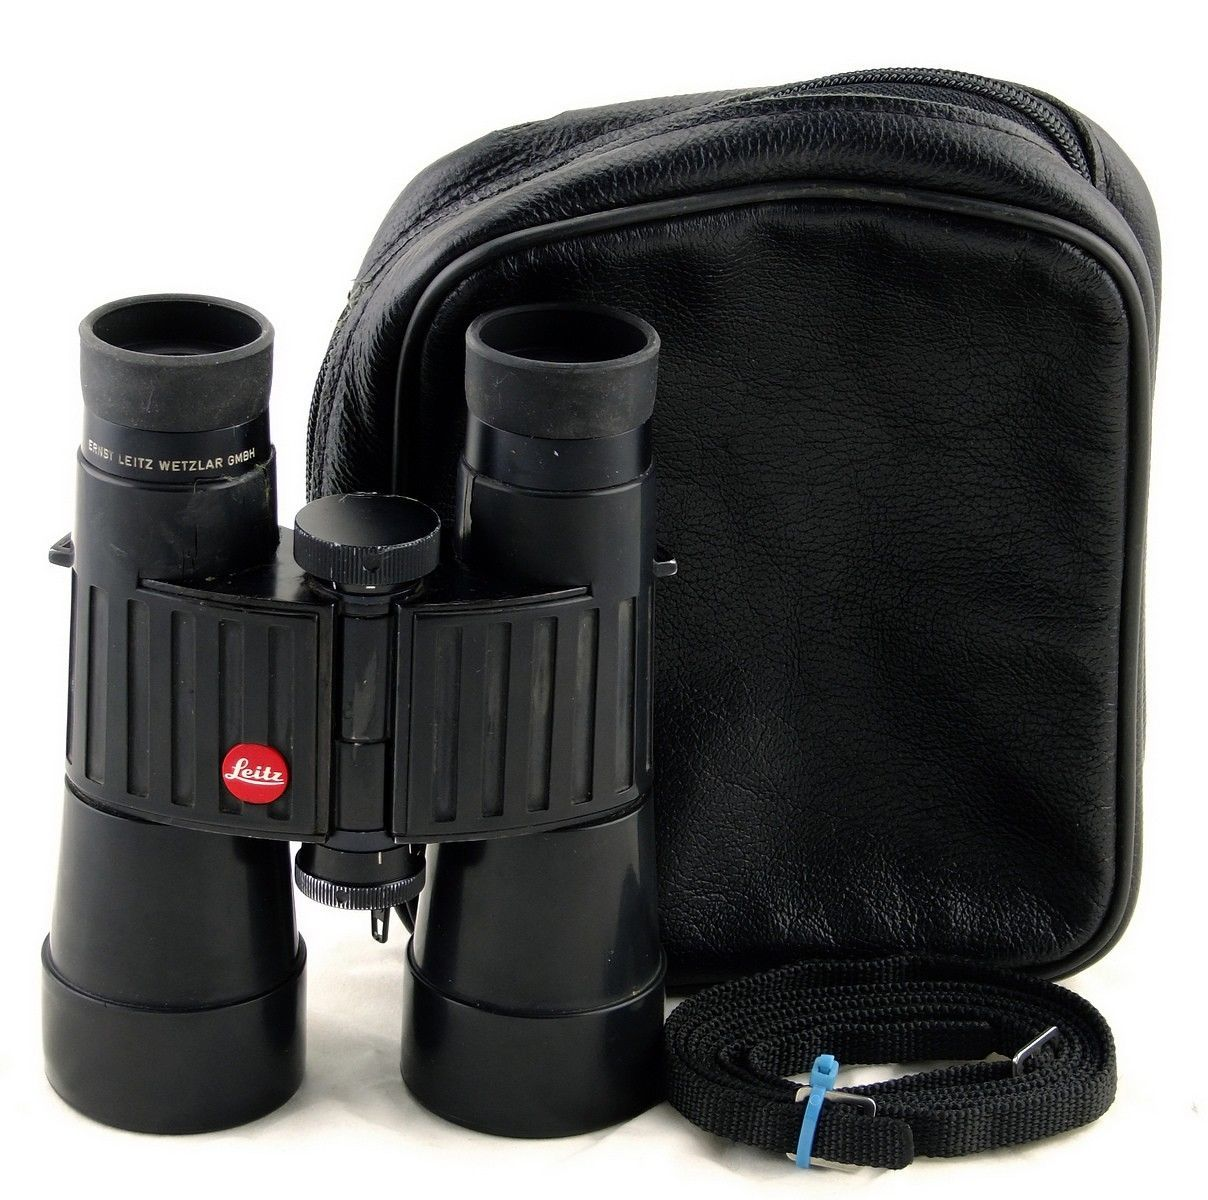 Binocular Cases & Accessories Orderly Carl Zeiss Prism Binoculars & Telescopes